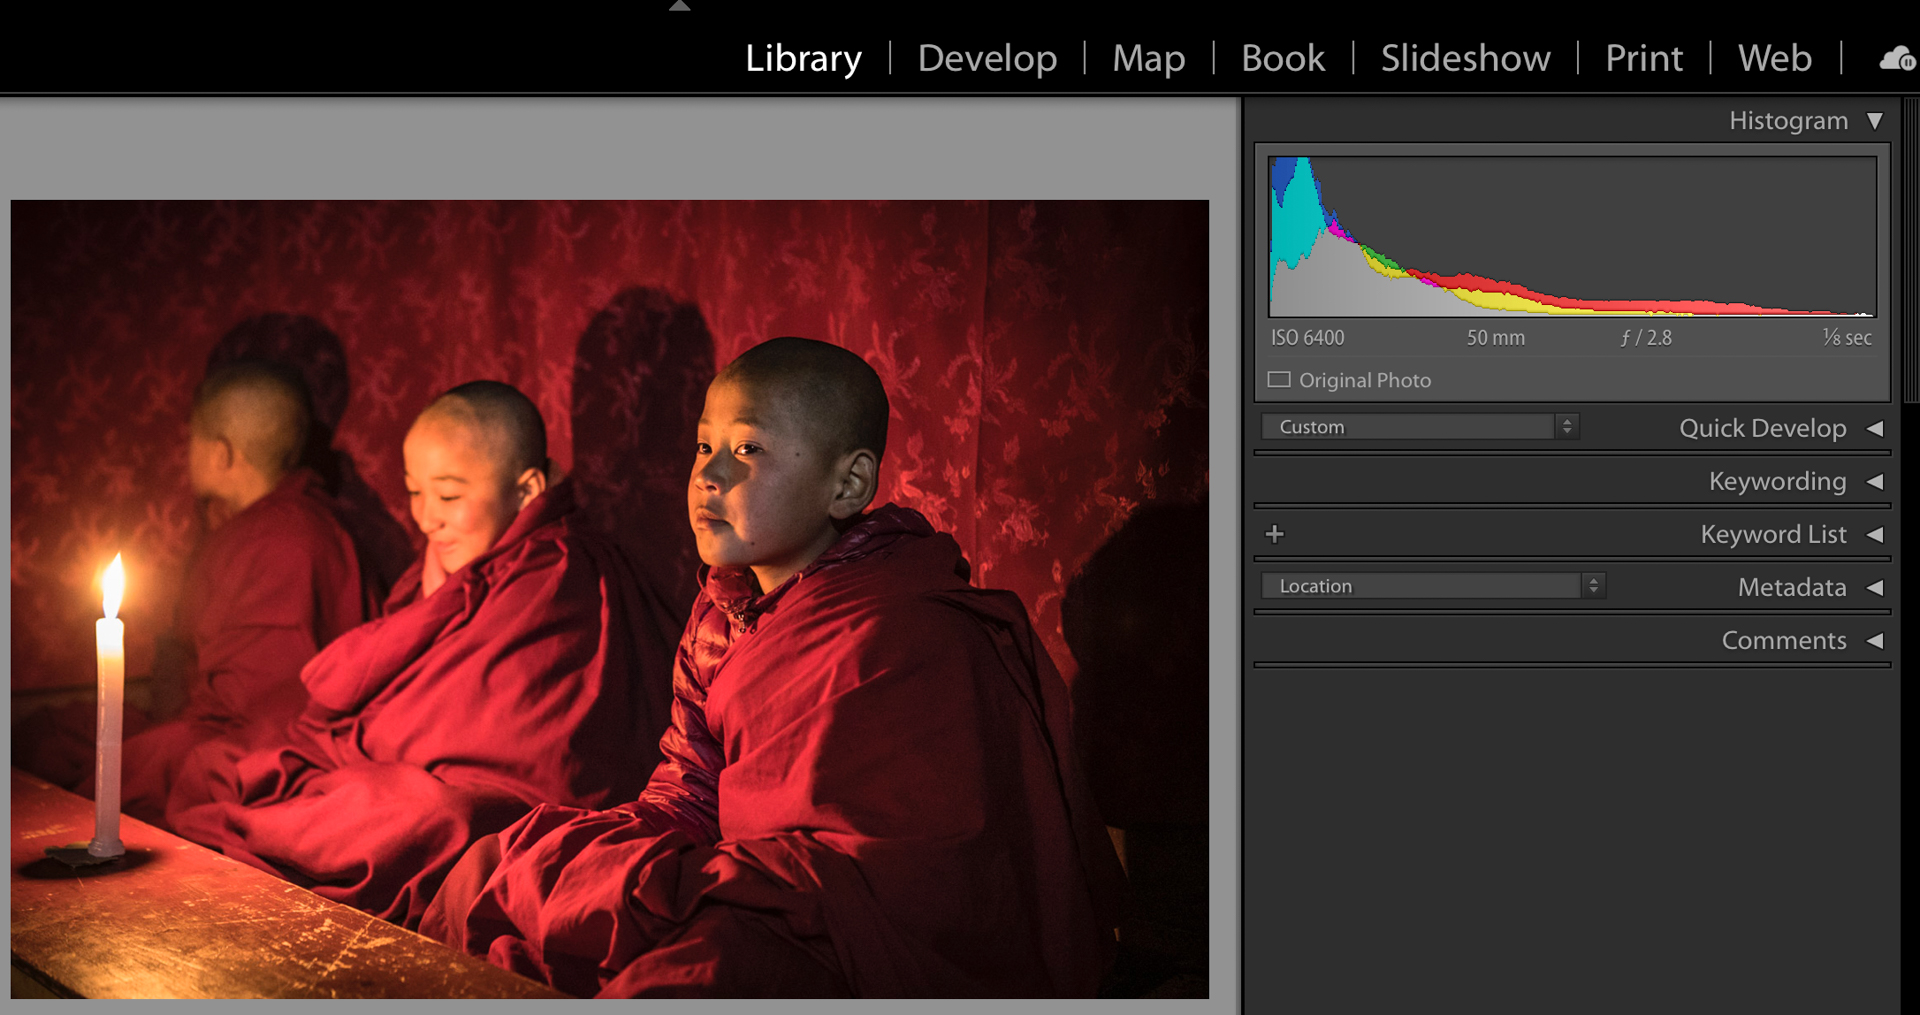 Lightroom screenshot showng an image of young monks, along with the histogram of the image